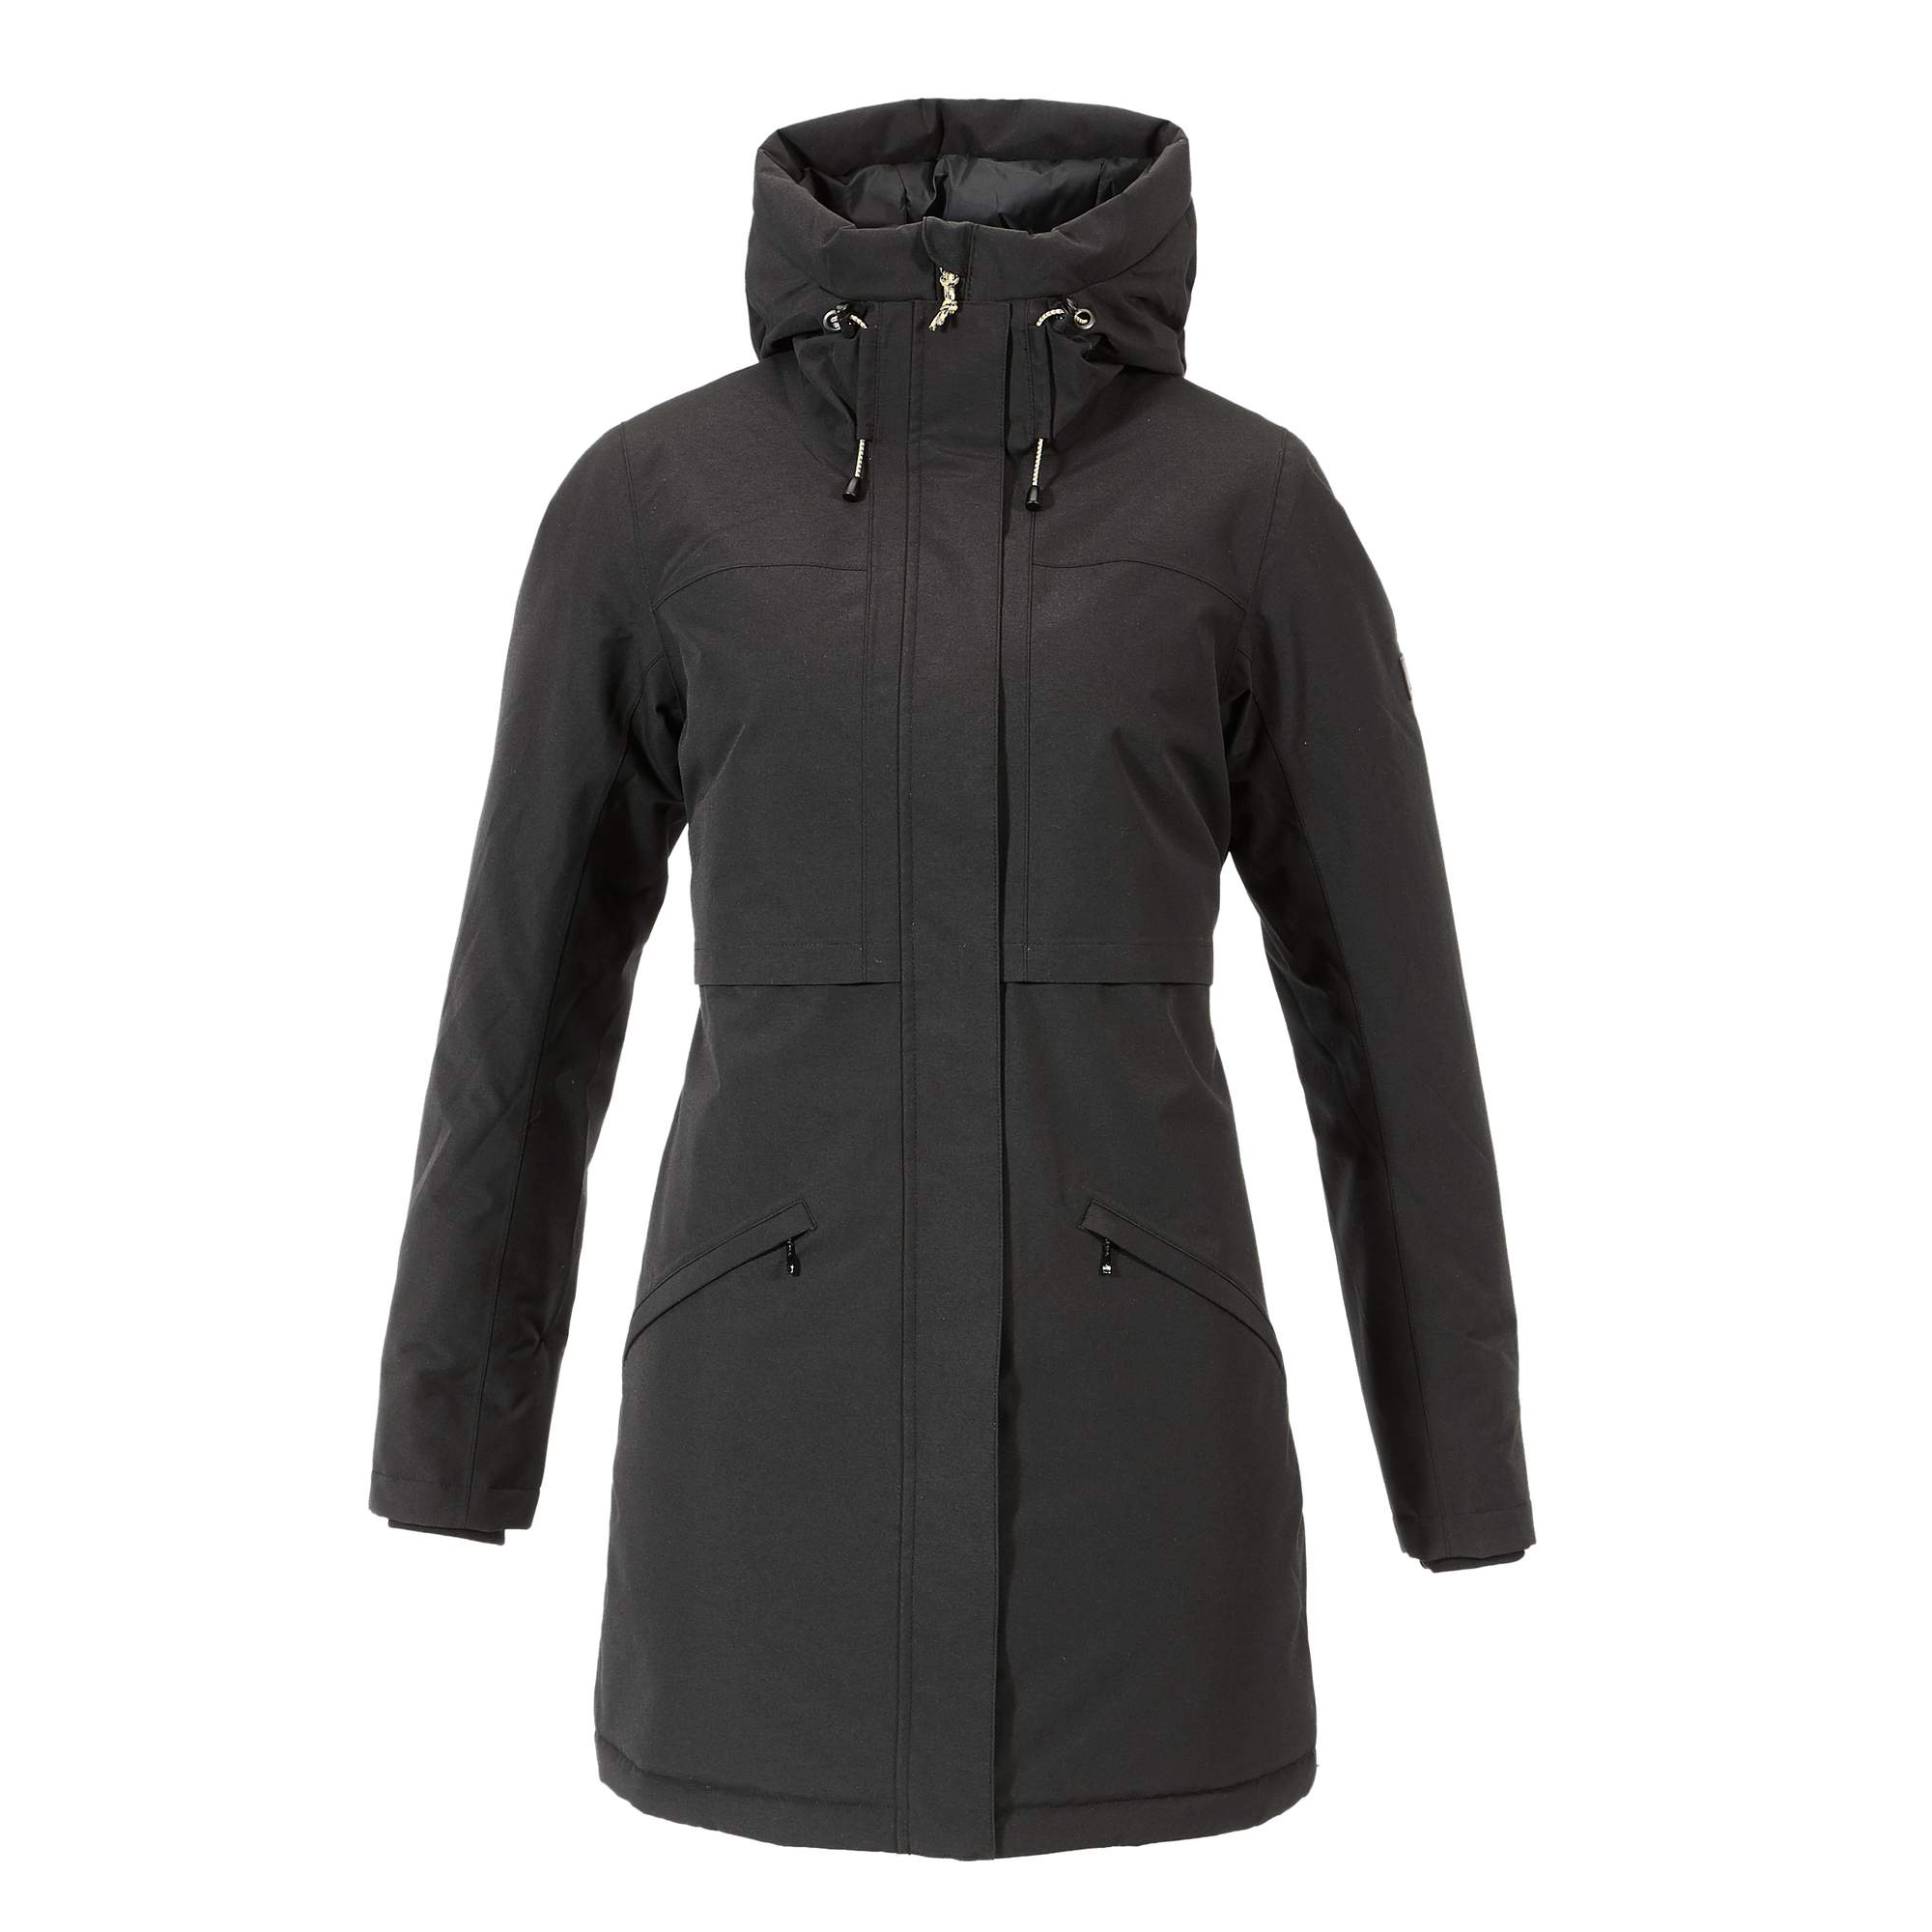 Winterjacke Damen Extrem Warm Superjacken 2018